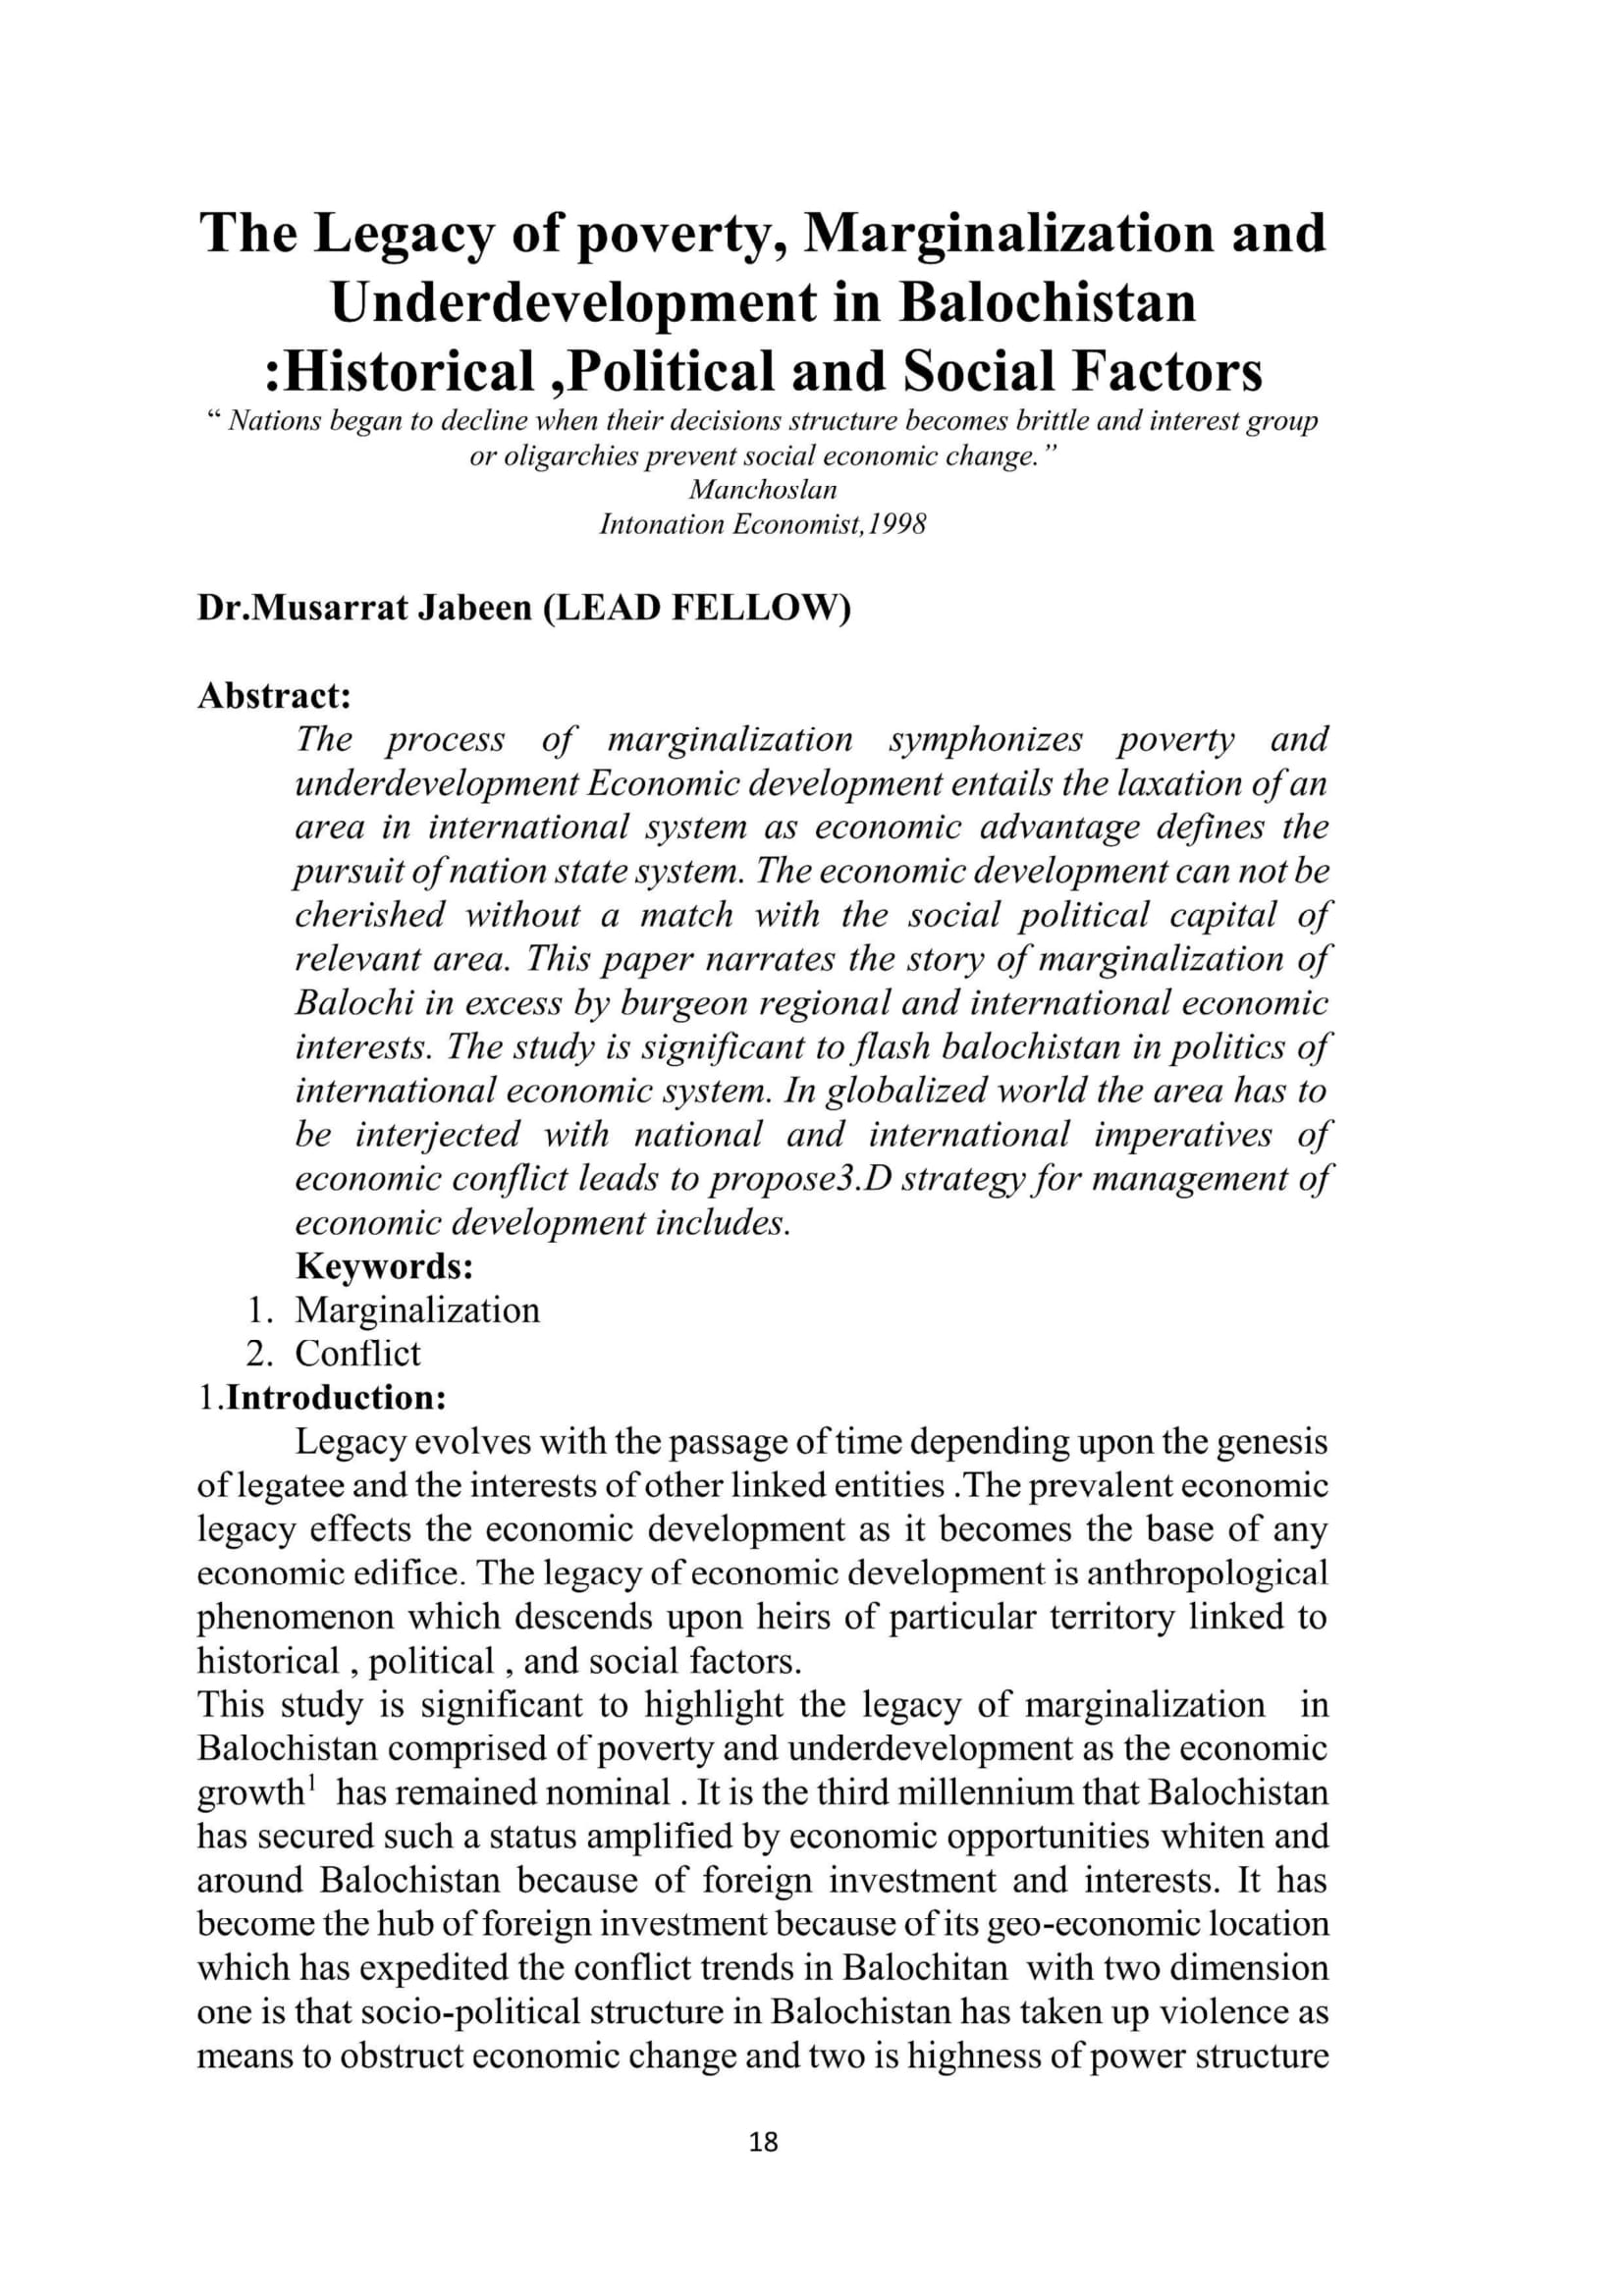 The Legacy of poverty, Marginalization and Underdevelopment in Balochistan :Historical ,Political and Social Factors